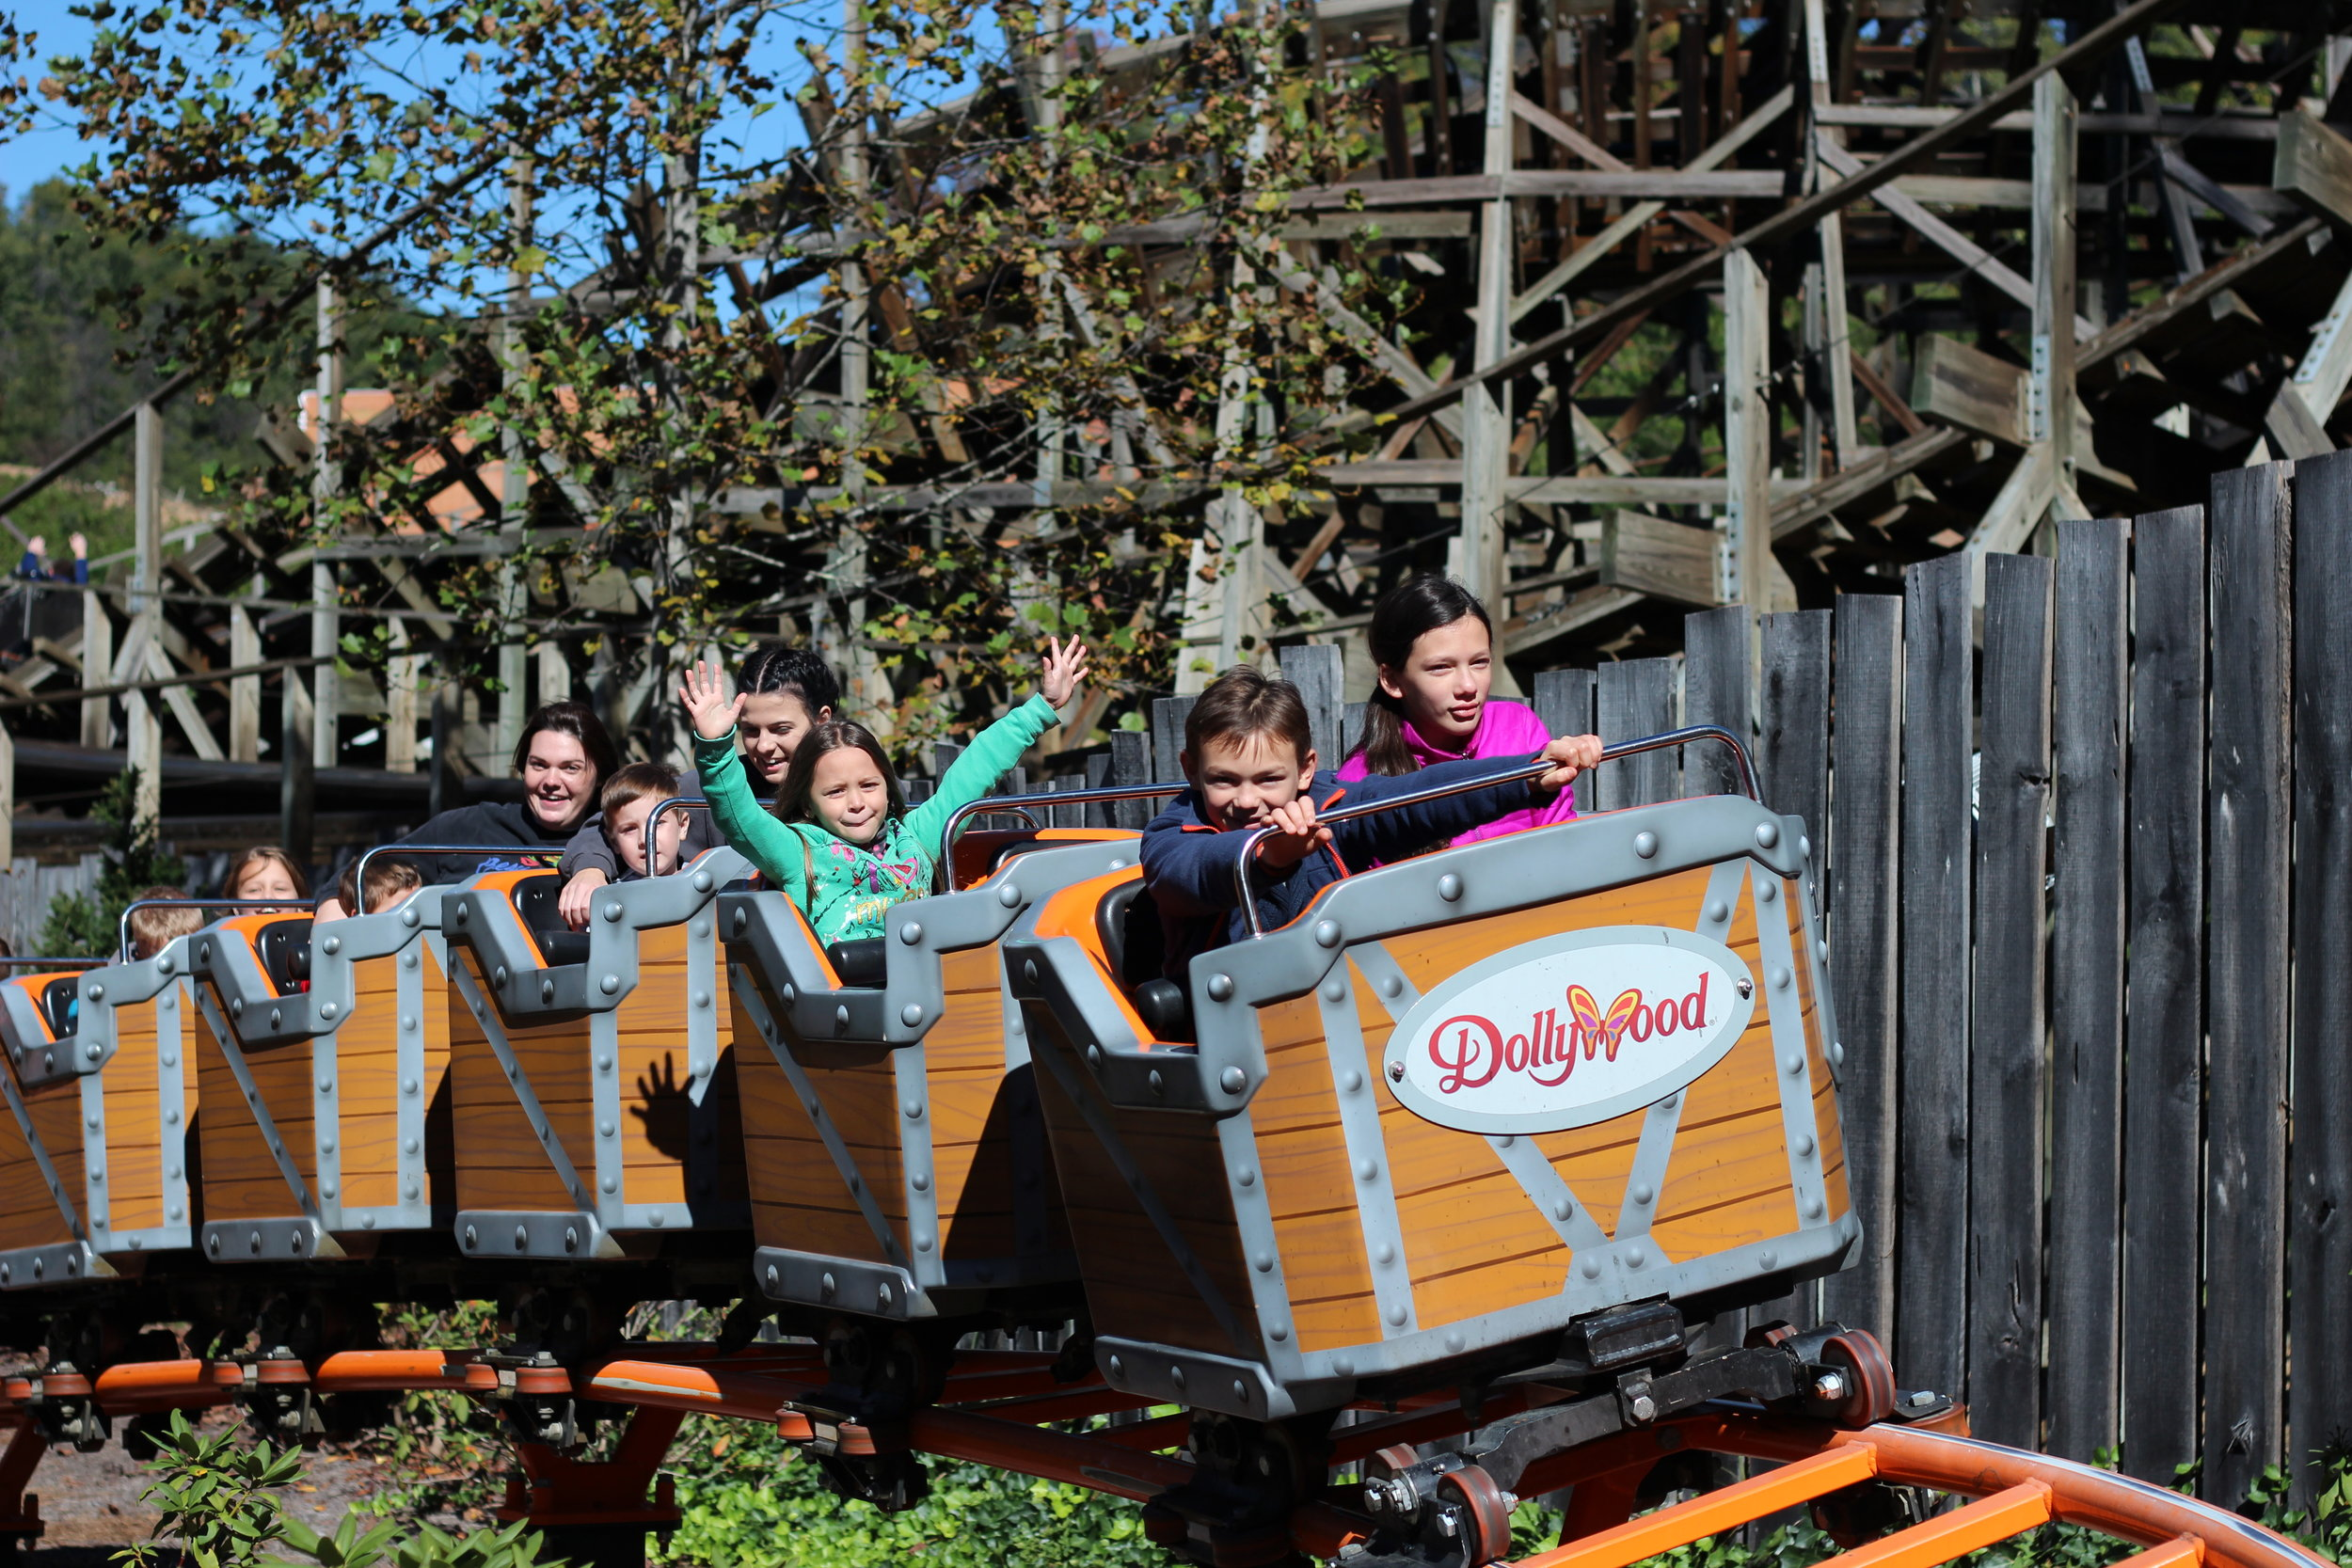 Dollywood Tweener Roller Coaster.  Really, Fun for Everyone in the Family